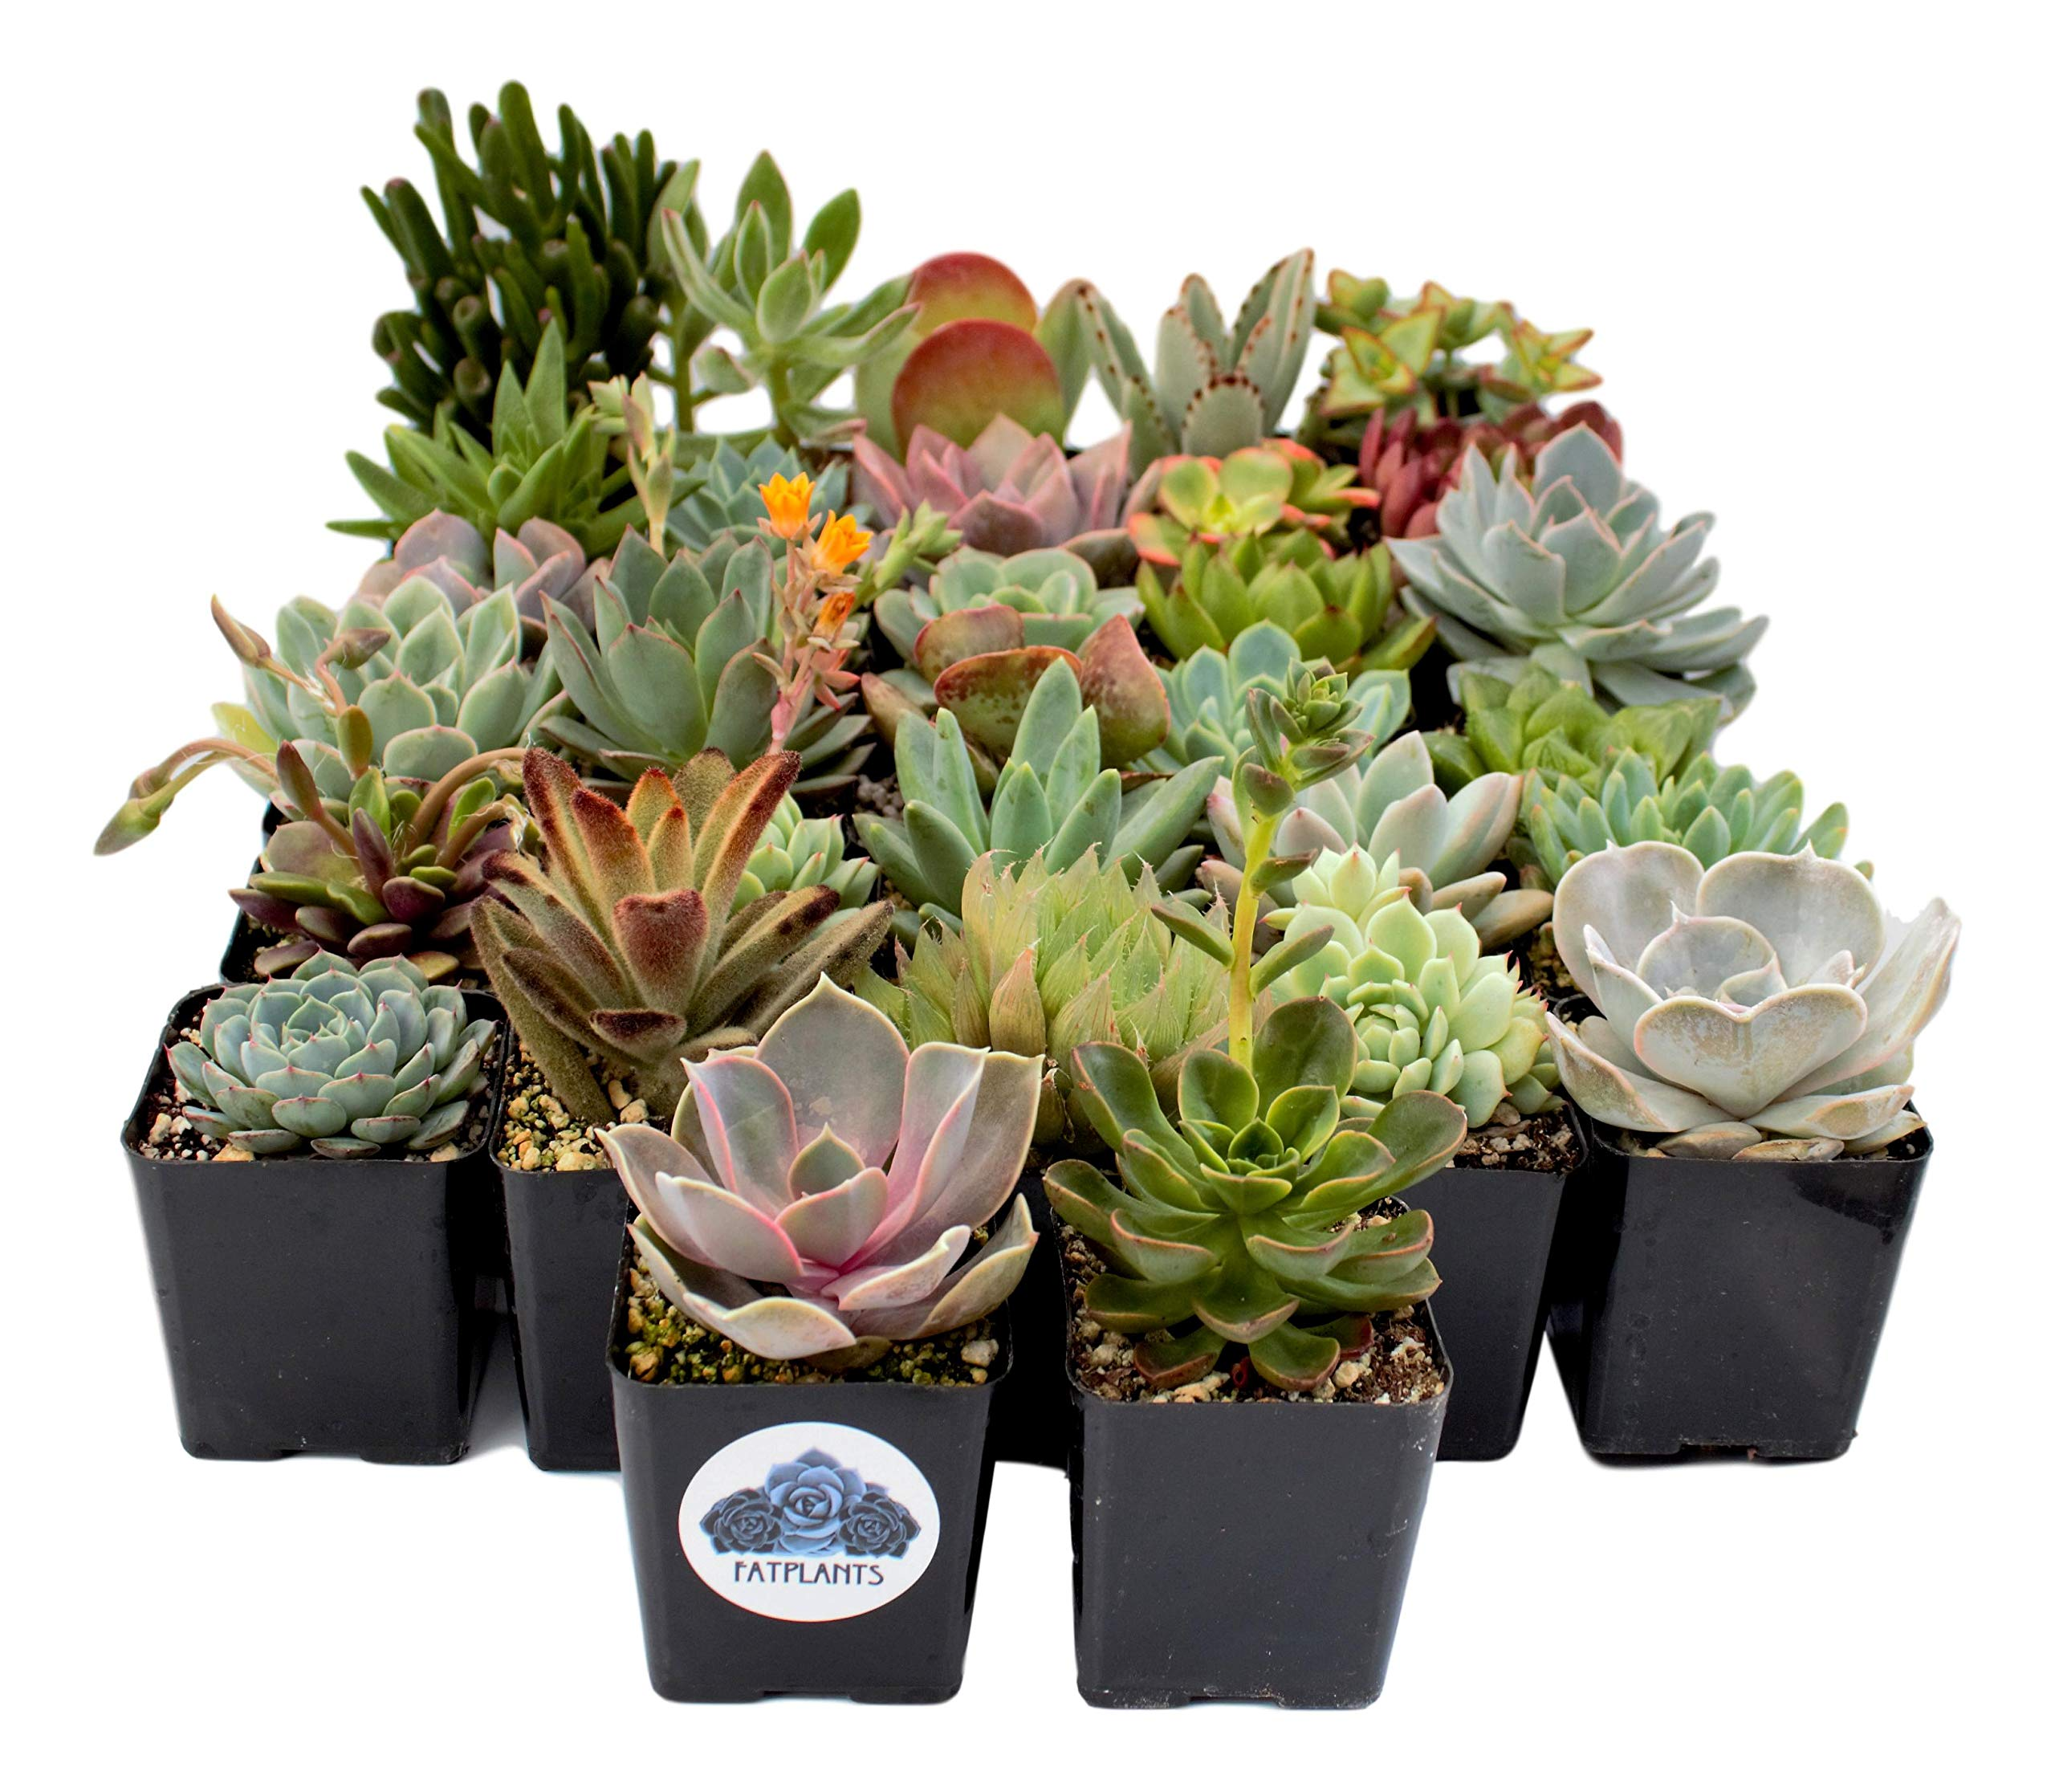 Fat Plants San Diego Premium Succulent Plant Variety Package. Live Indoor Succulents Rooted in Soil in a Plastic Growers Pot (32) by Fat Plants San Diego